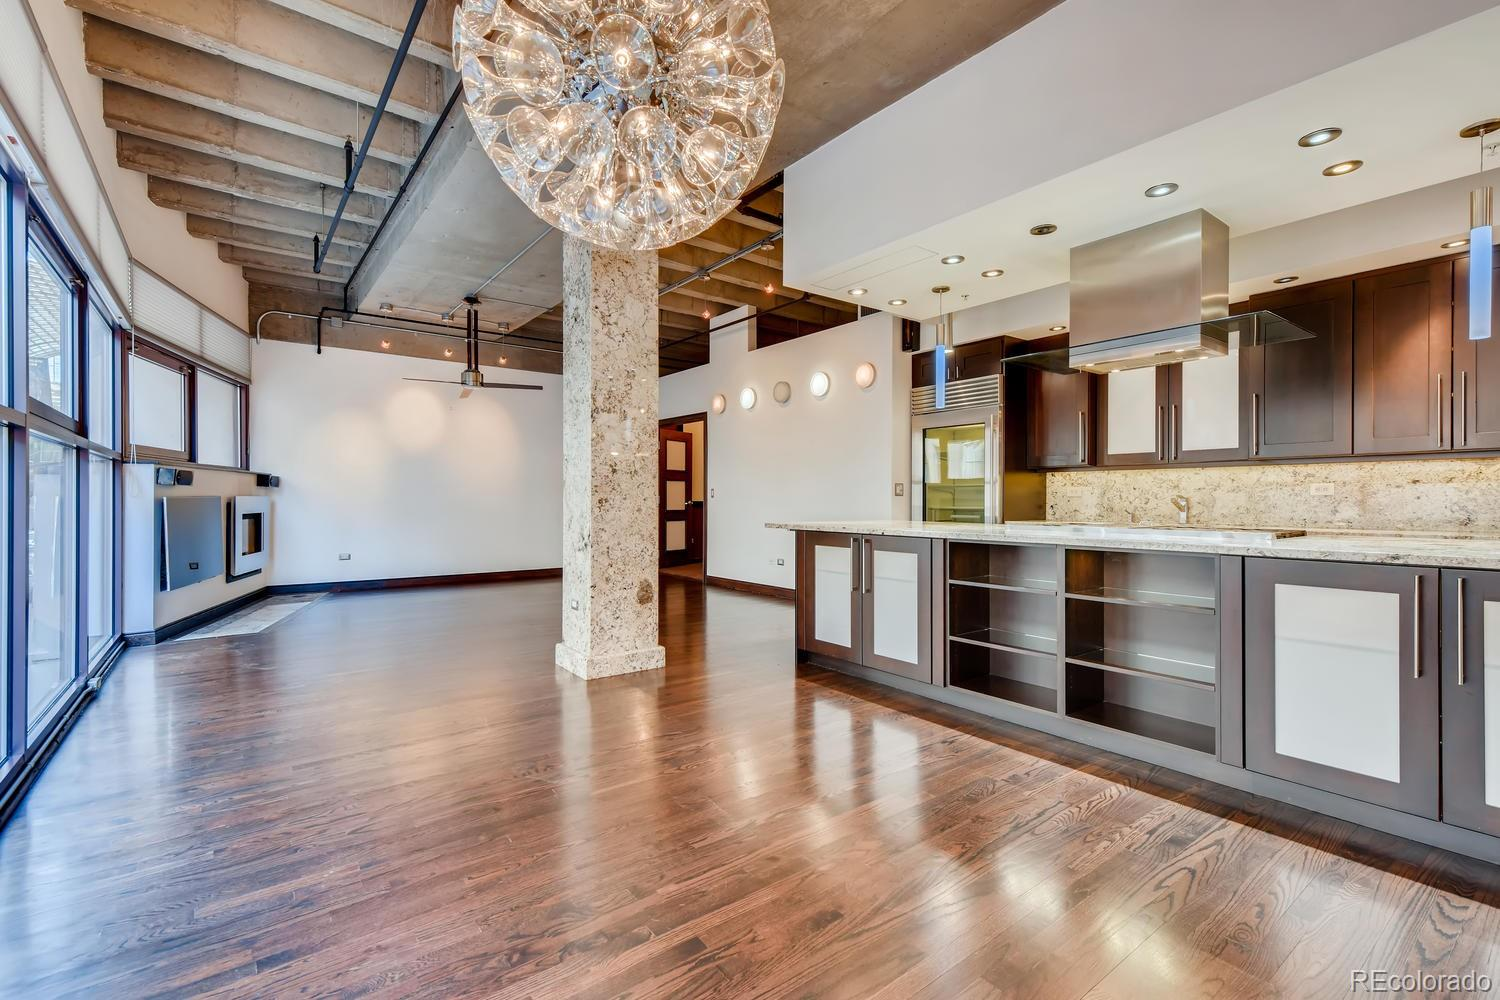 Luxury living in this gorgeous downtown loft. Elements for distancing & comfortable living- you can enter the 2nd floor by secured elevator to the loft section and not the building tower. This unit has a separate Heating & A/C not and is not connected to the main building system, Additionally you can walk up to this residence and not have to use the elevator. Elevators are separate from the main building elevators. The hallway gallery flows into the fabulous kitchen which featuring outstanding appliances- 6 burner+griddle gas range with double oven, wine chiller, drawer refrigerators, Subzero glass door refrigerator, Miele built-in coffee station, warming drawer and Fisher/Paykel dishwasher drawers. Across the hall is a cozy tiled patio to enjoy with city with television and gas stub for outdoor barbecue grill. The open dining and living room area has nice features including a wall of windows, gas fireplace, 14' marble faced column, newer roller blinds and high ceilings. Rare to find downtown is a media room with 3-D projector, screen & glasses and custom lighting. Master bedroom with tall ceilings and skylights, includes custom designed shower & tile, heated floors, multiple shower & rain heads with steam and double sinks.  The central bathroom has a custom design with Venetian Plaster walls, air jetted tub and multiple spray head shower.  There are two addition bedrooms all loft like with tall ceilings.  Lots of extras-additional custom bathroom 3/4 bath with multiple spray heads full size laundry room with custom shelving, all the televisions as installed, Prime parking space #418 is included and there is a large storage close by the unit. Prime walk-able downtown location close to all the excitement of the city.  Close to the 16th Mall & shuttle, Larimer Square, Denver Center for the Performing Arts and a walkable distance to Coors Field or Pepsi Center.